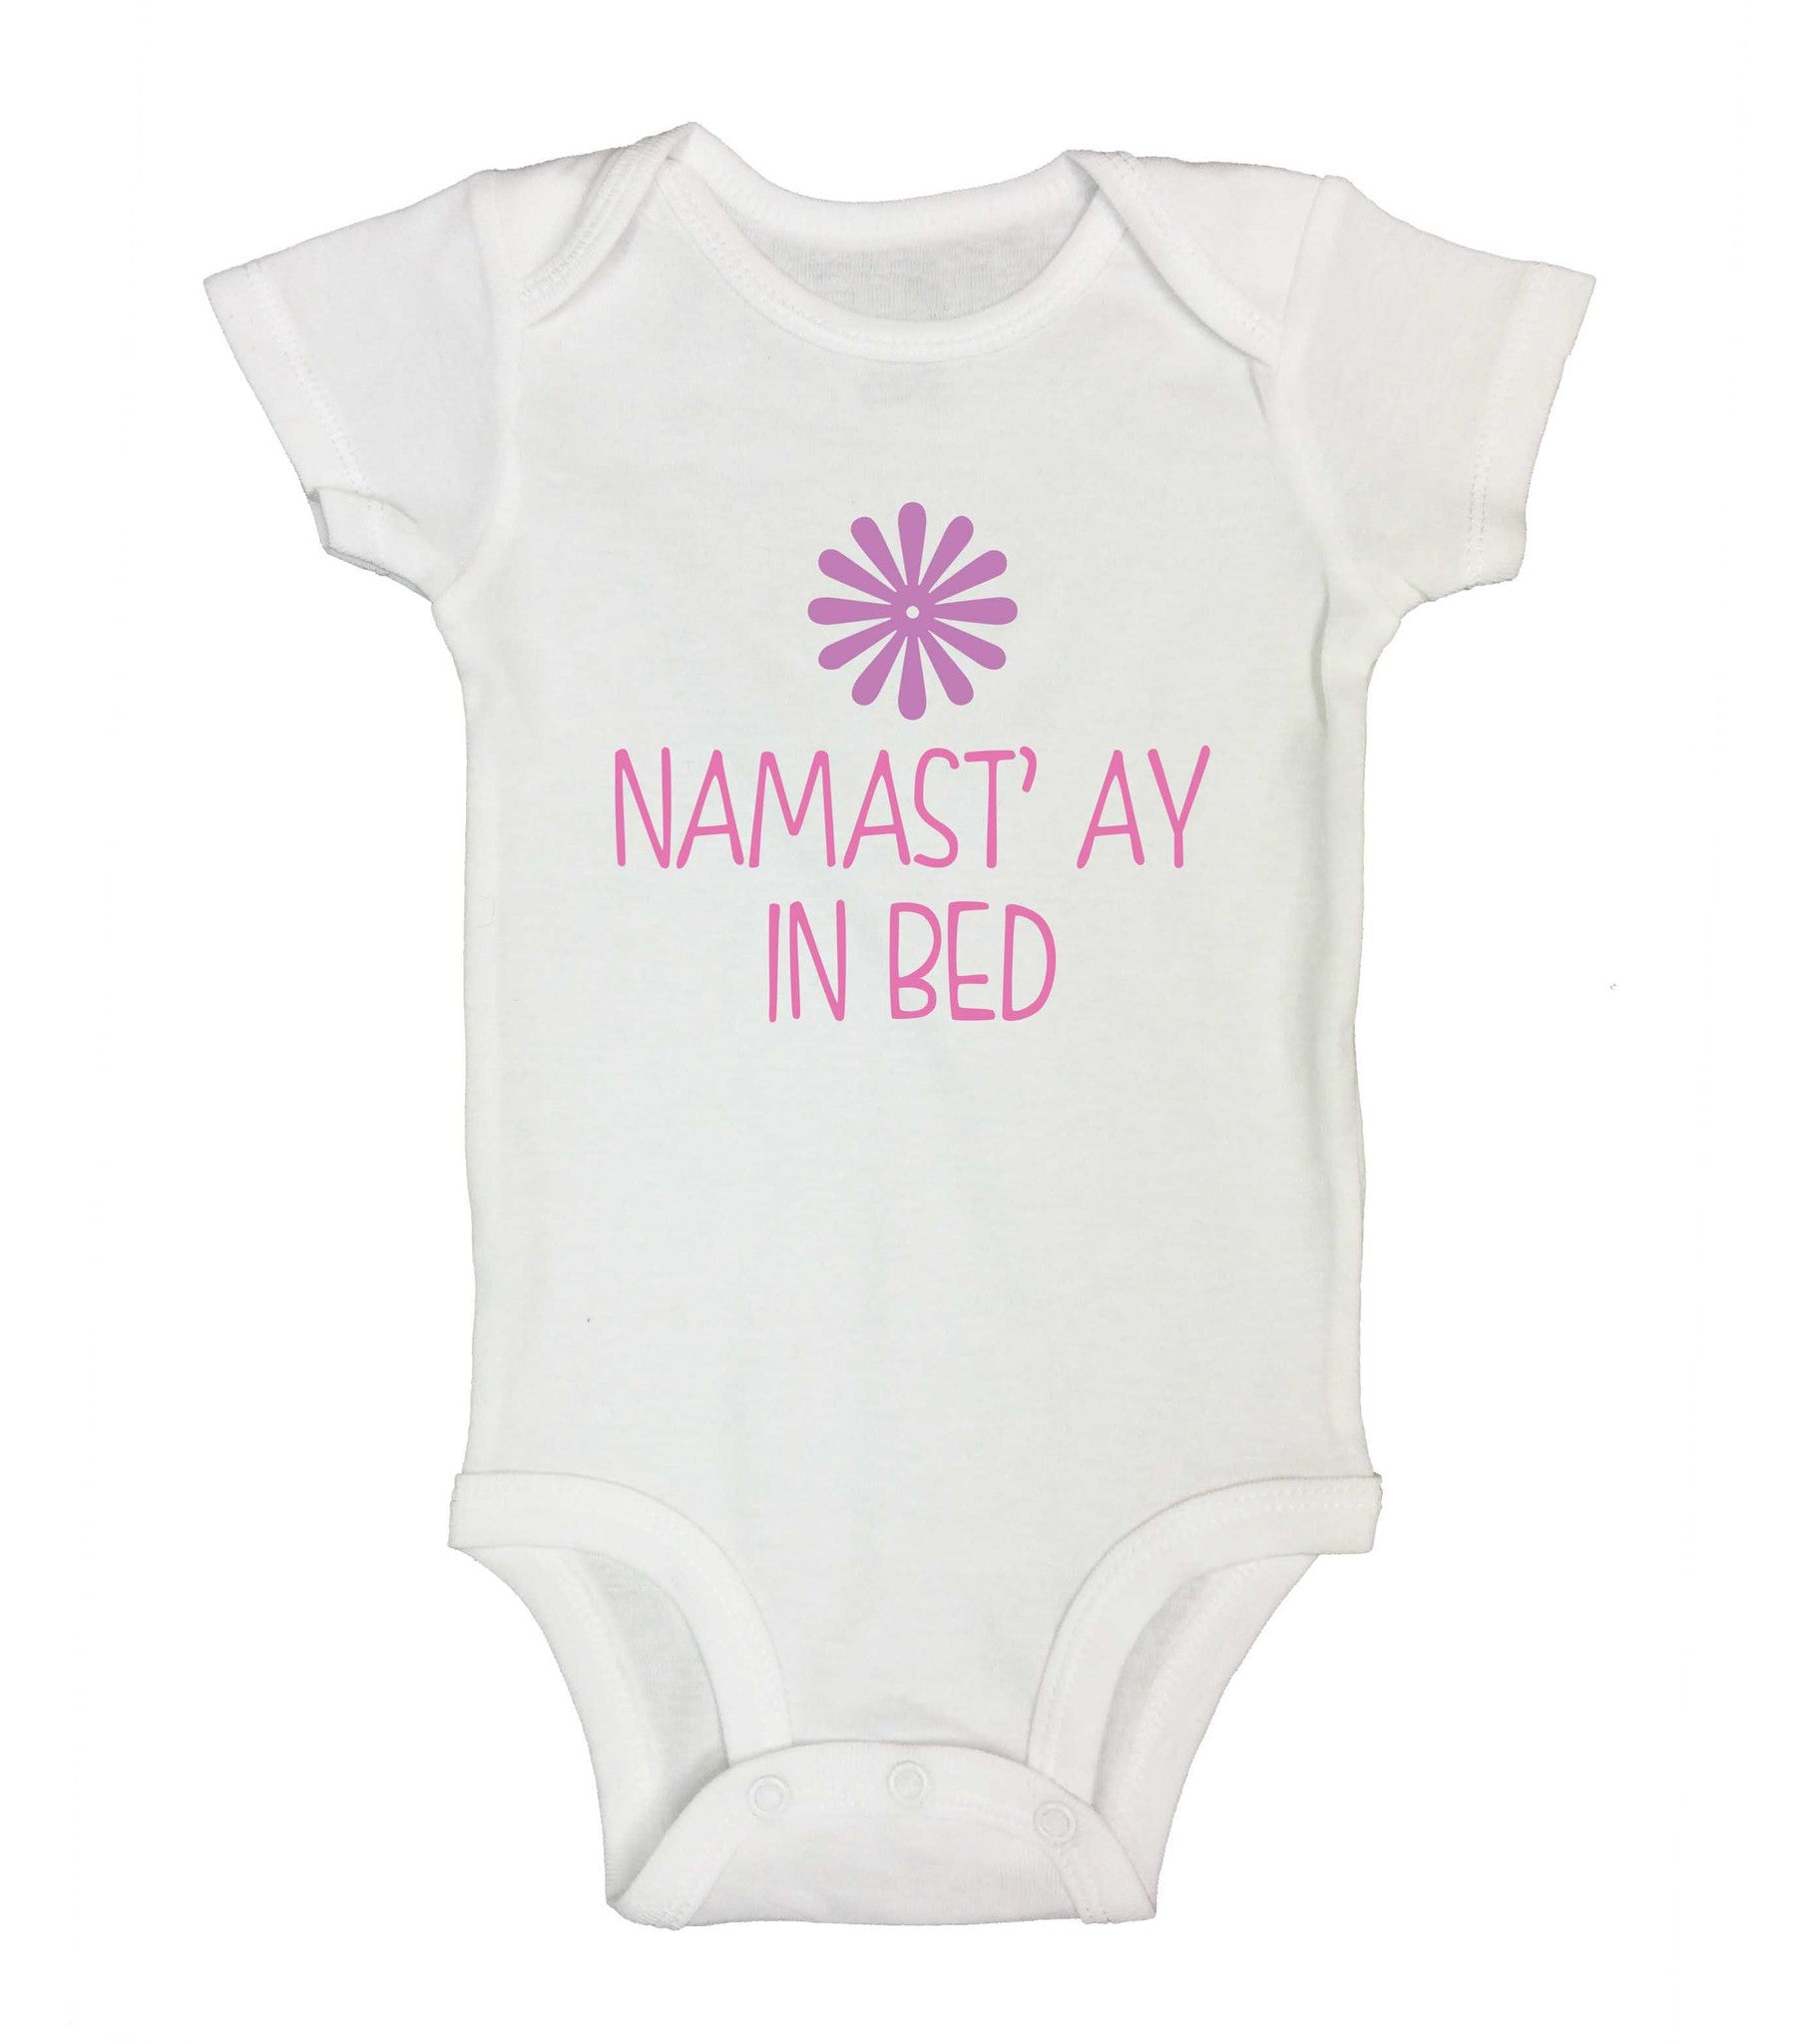 Namast' ay In Bed Funny Kids Onesie - B242 - Funny Shirts Tank Tops Burnouts and Triblends  - 2